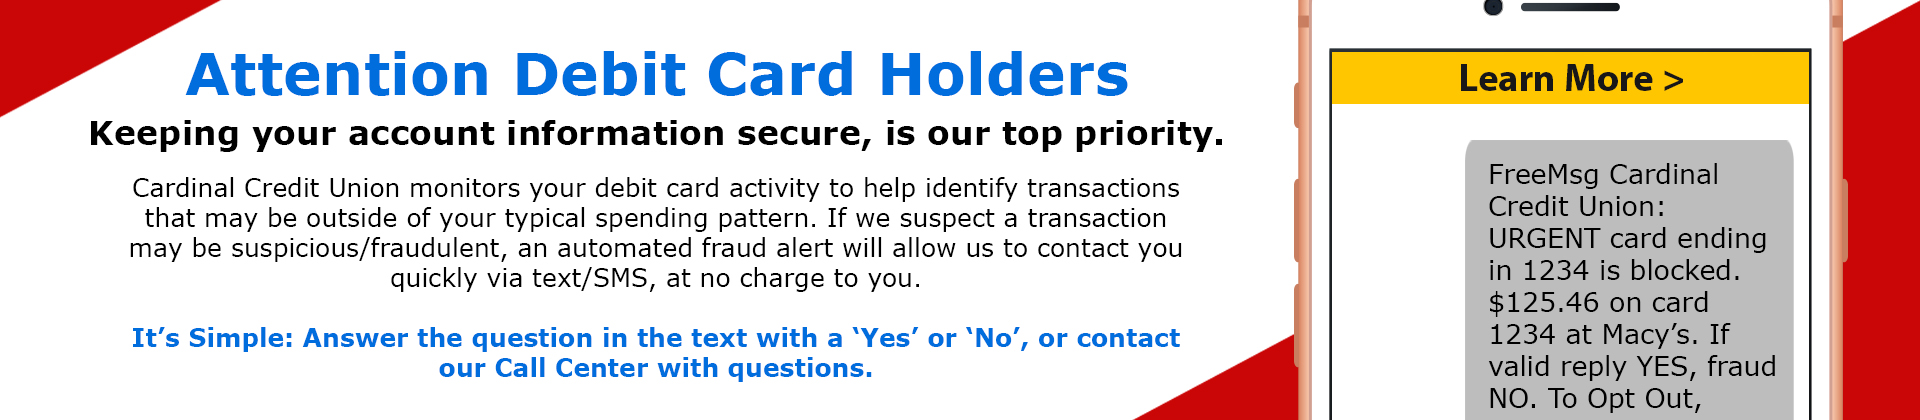 Cardinal Credit Union monitors your debit card activity to help identify transactions that may be outside of your typical spending pattern. If we suspect a transaction may be suspicious/fraudulent, an automated fraud alert will allow us to contact you quickly via text/SMS, at no charge to you. It's Simple: Answer the question in the text with a 'Yes' or 'No', or contact our Call Center with questions.